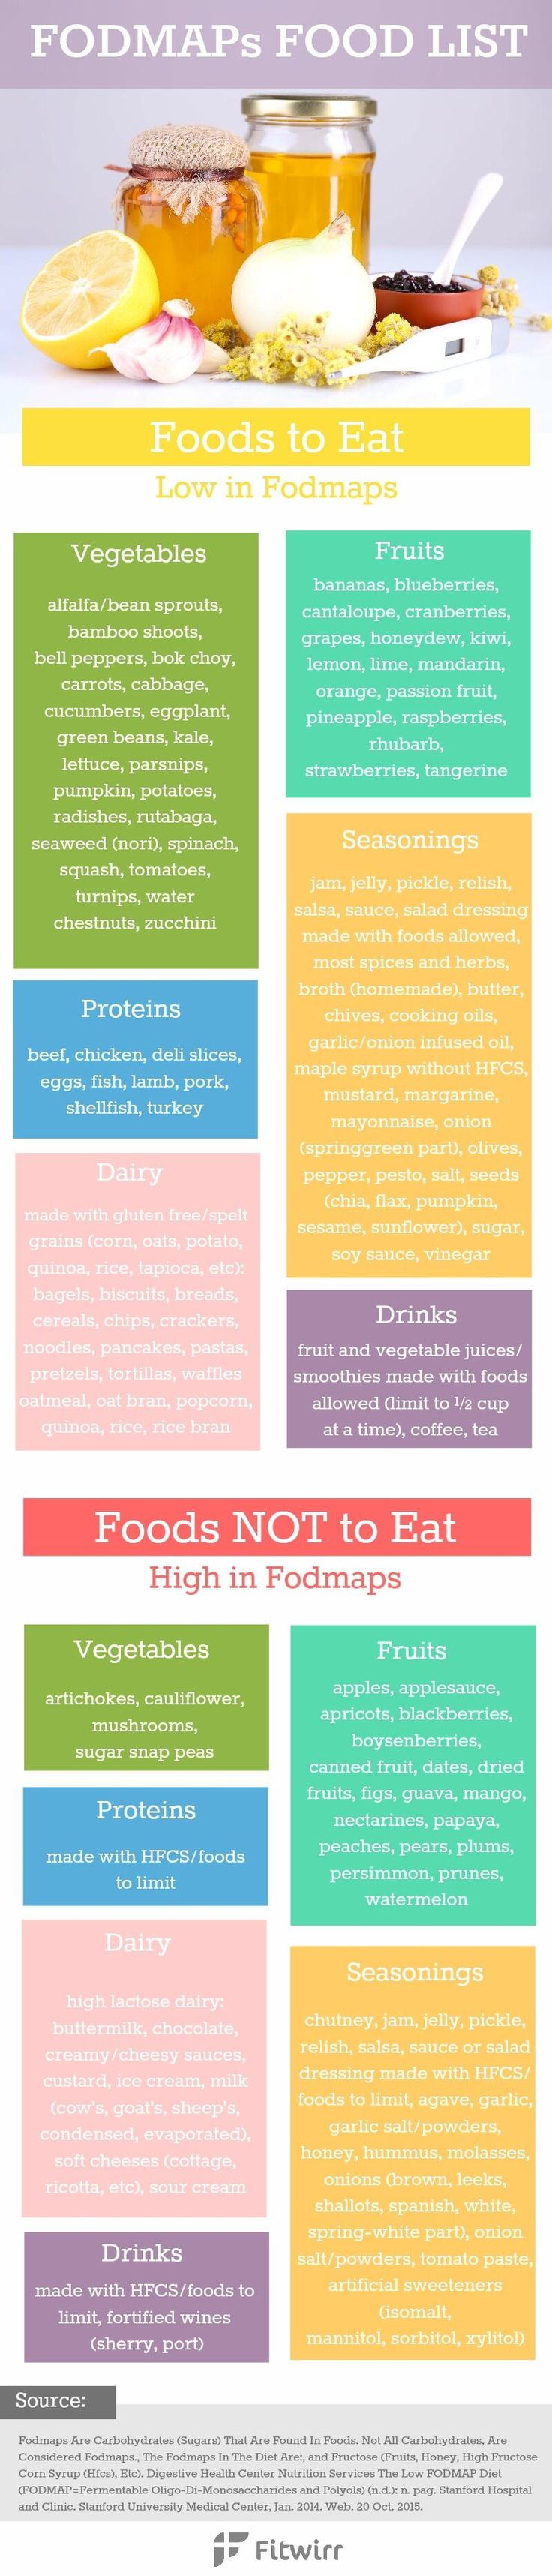 FODMAPs diet food list